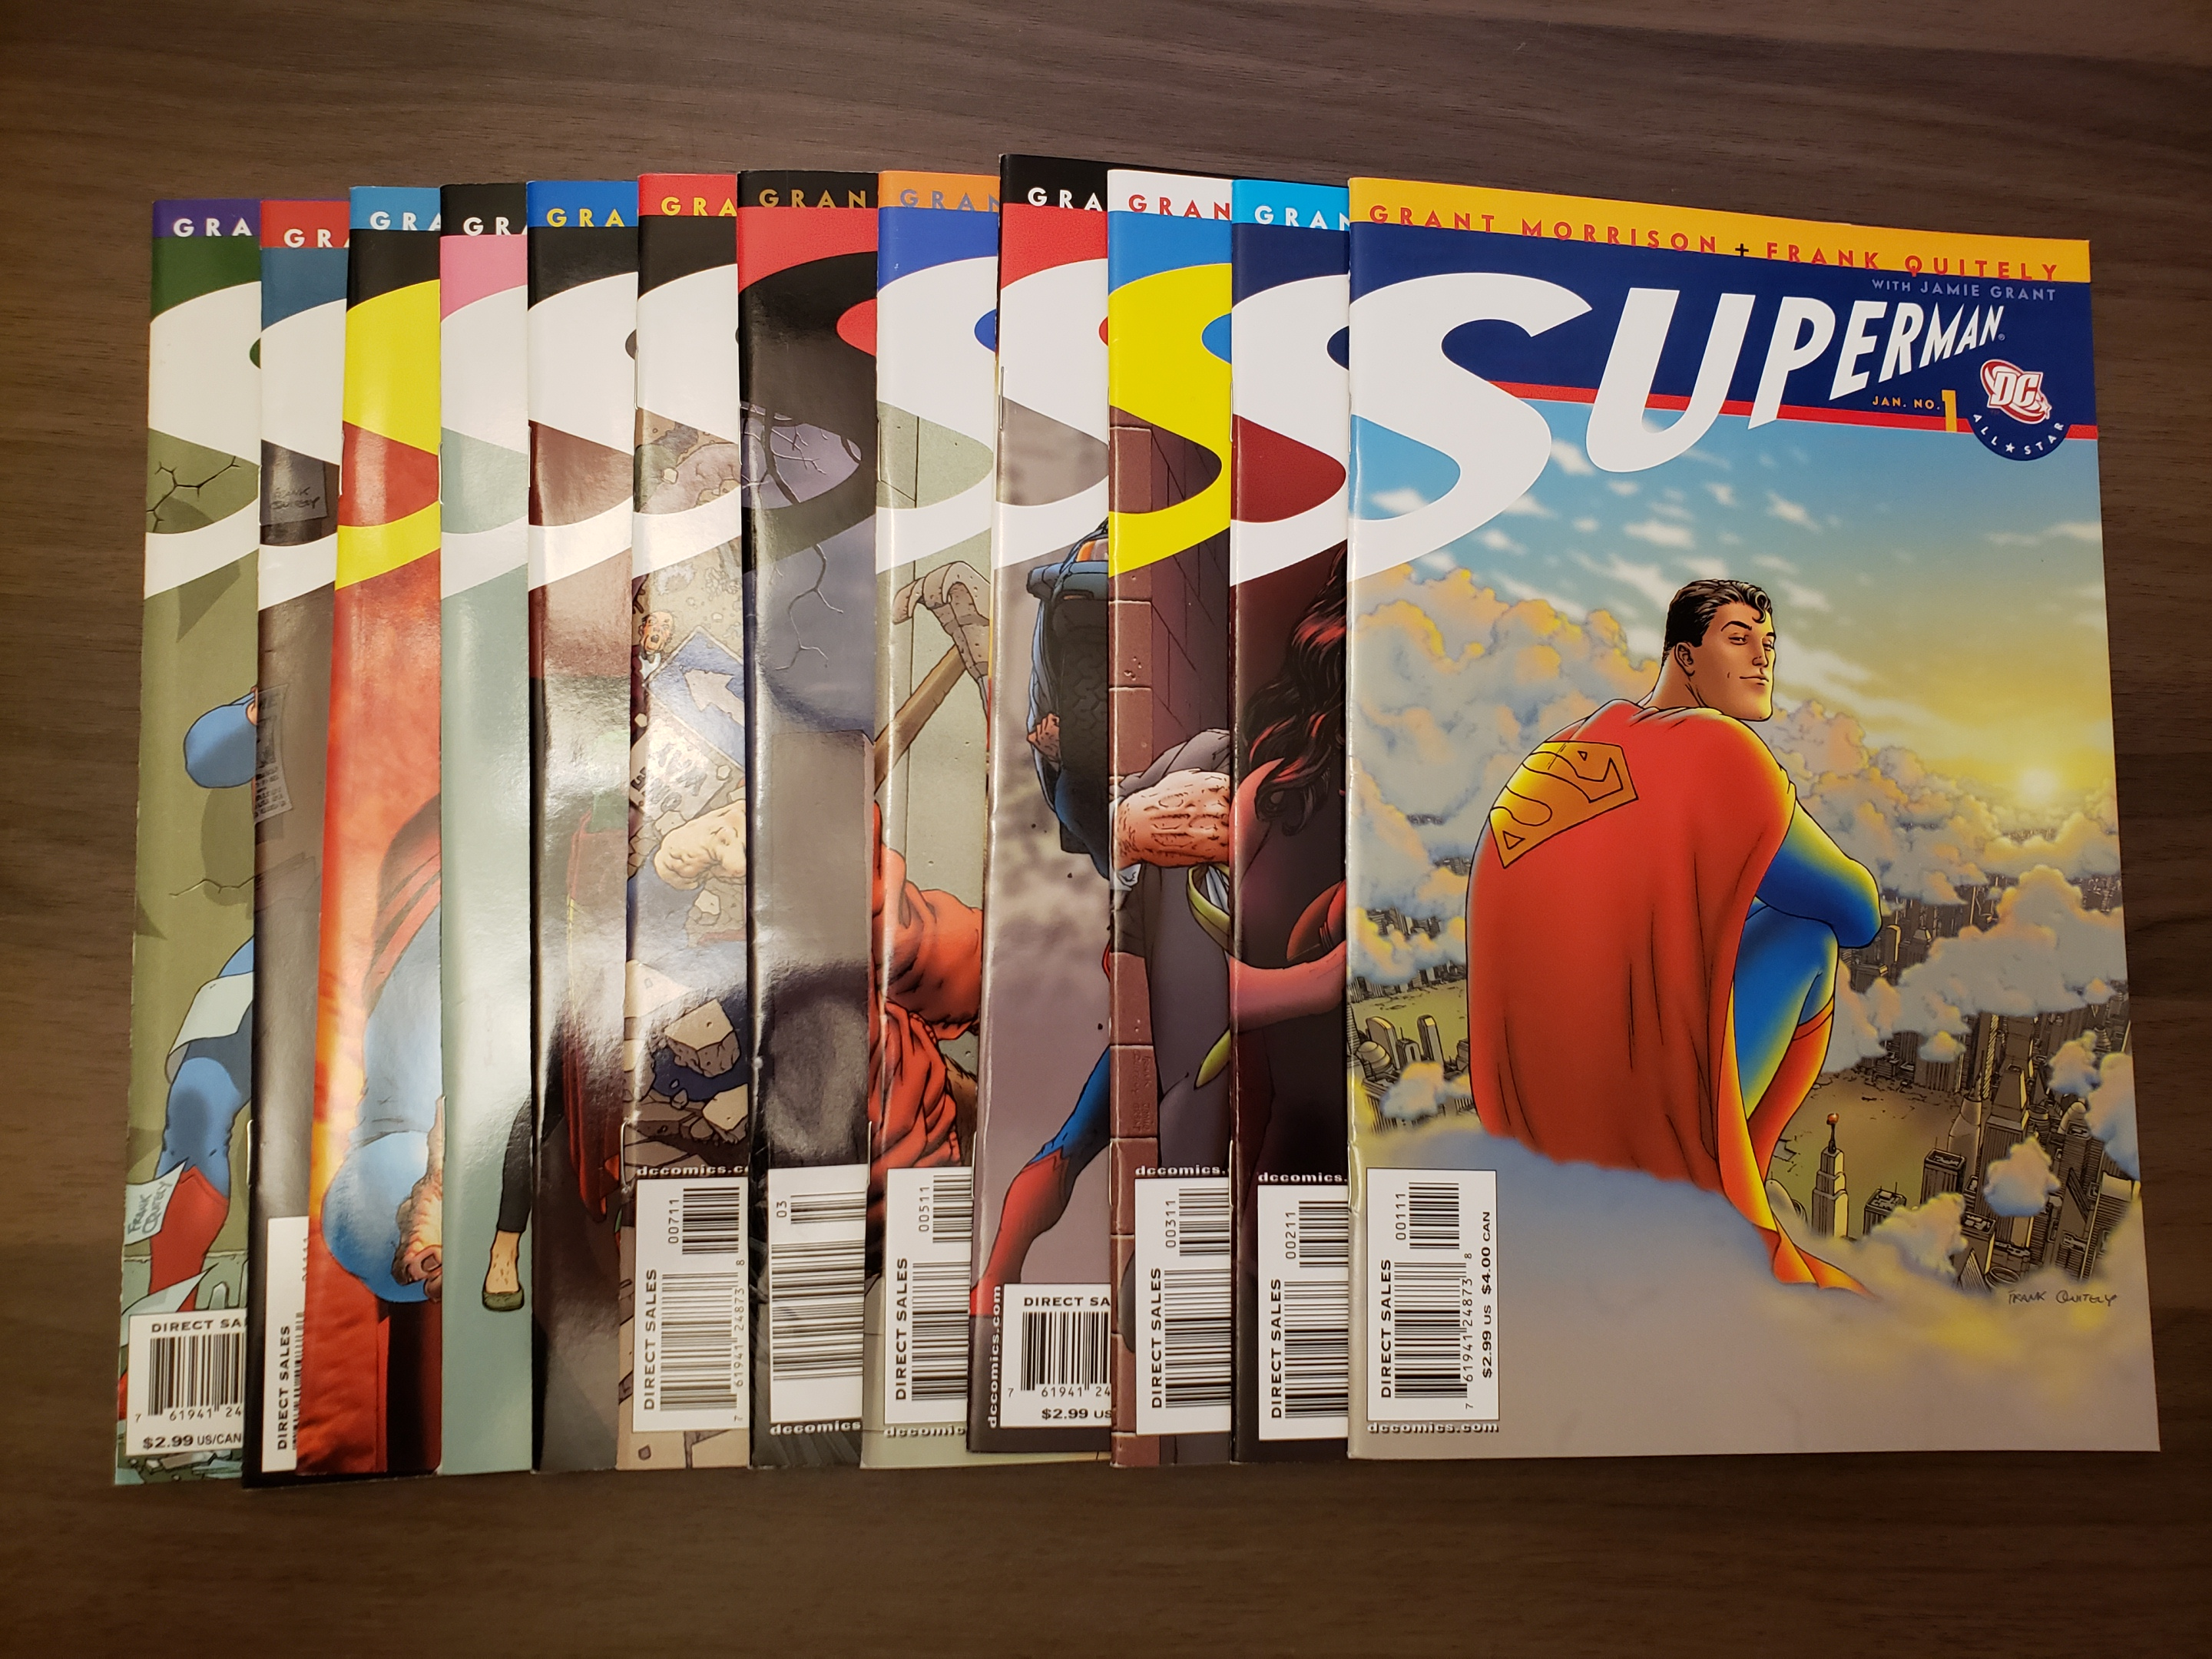 All-Star Superman (2005) #1-12 (8.0+) Complete Series by Grant Morrison & Frank Quietly